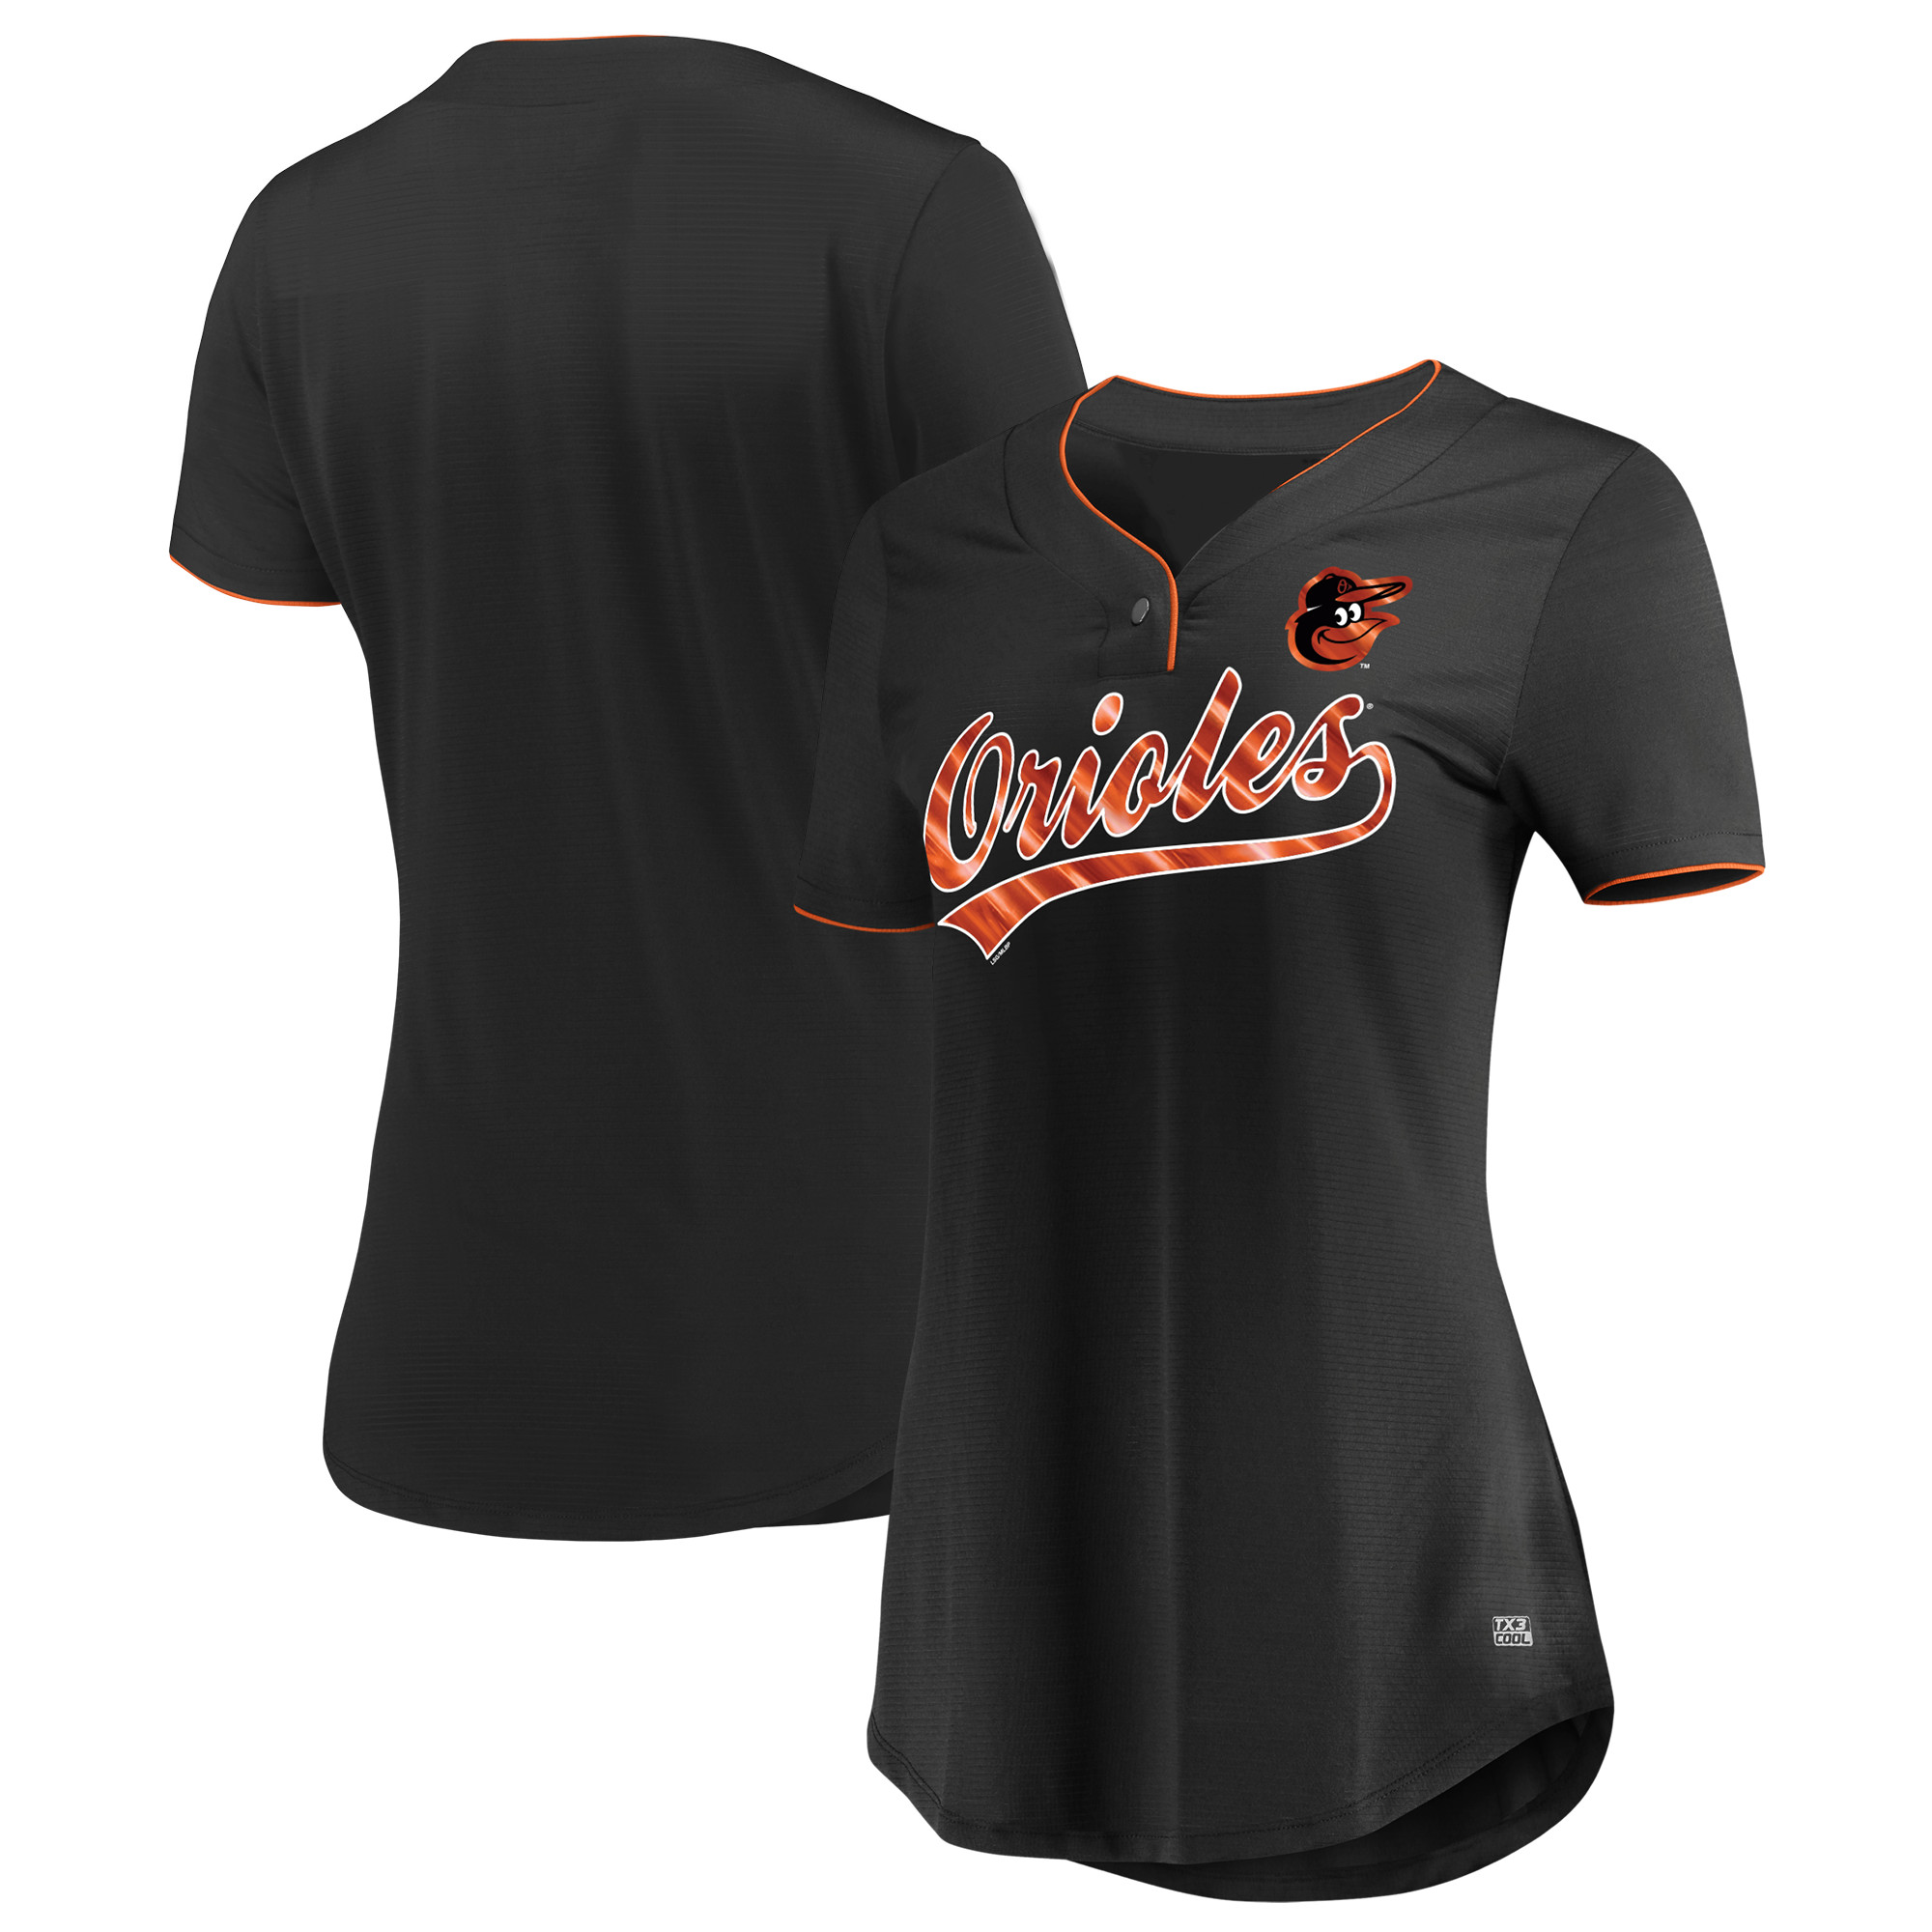 fed5ad14482 Baltimore Orioles Team Shop - Walmart.com